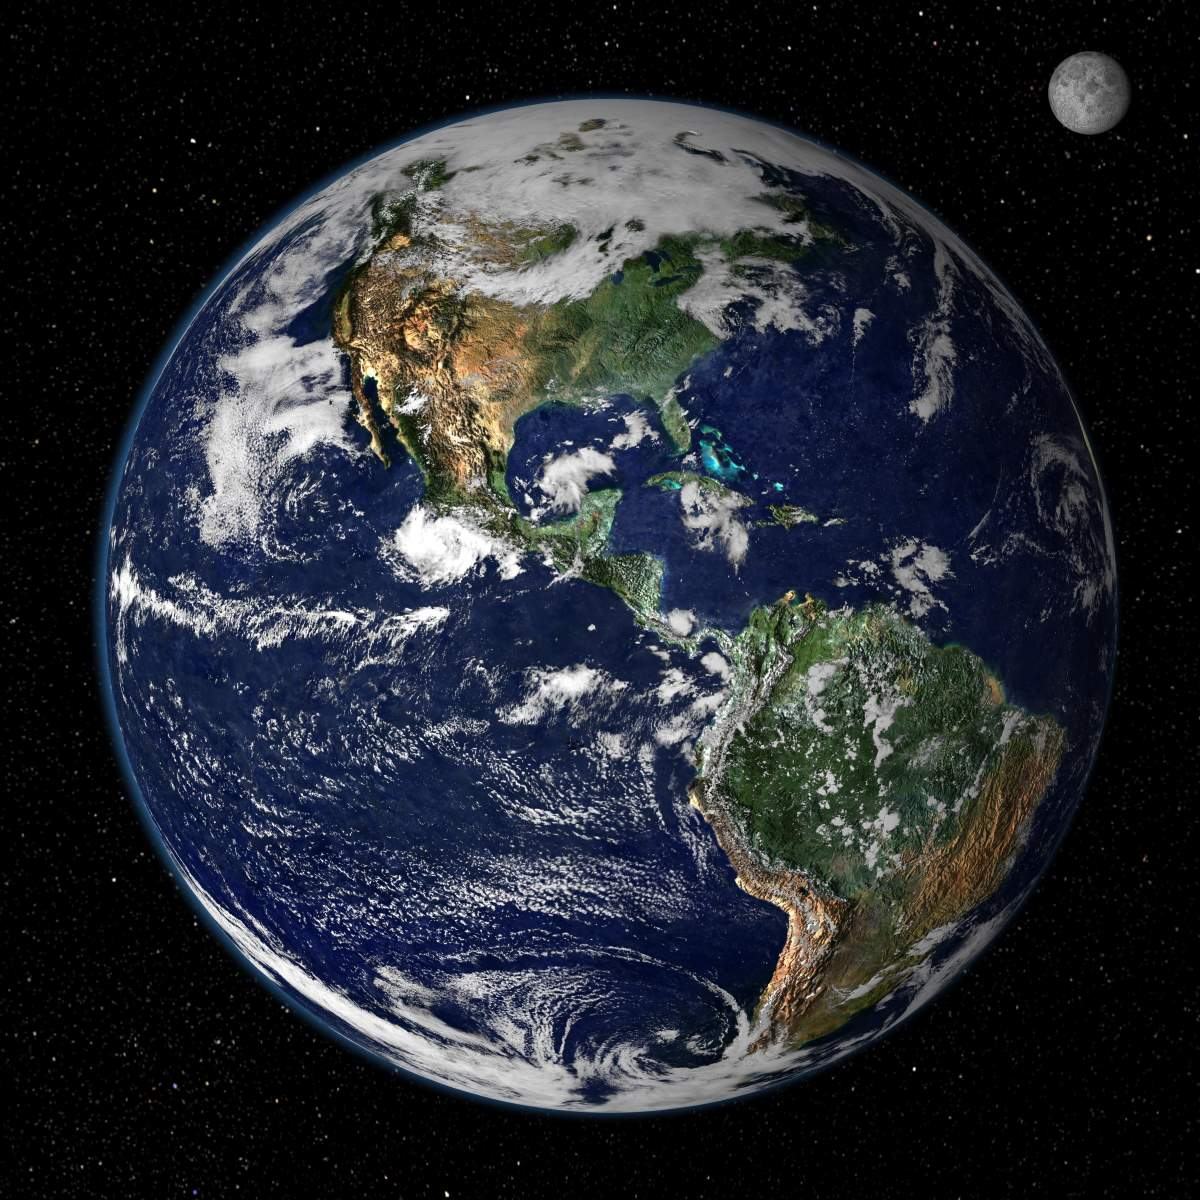 Earth and Moon image (NASA)